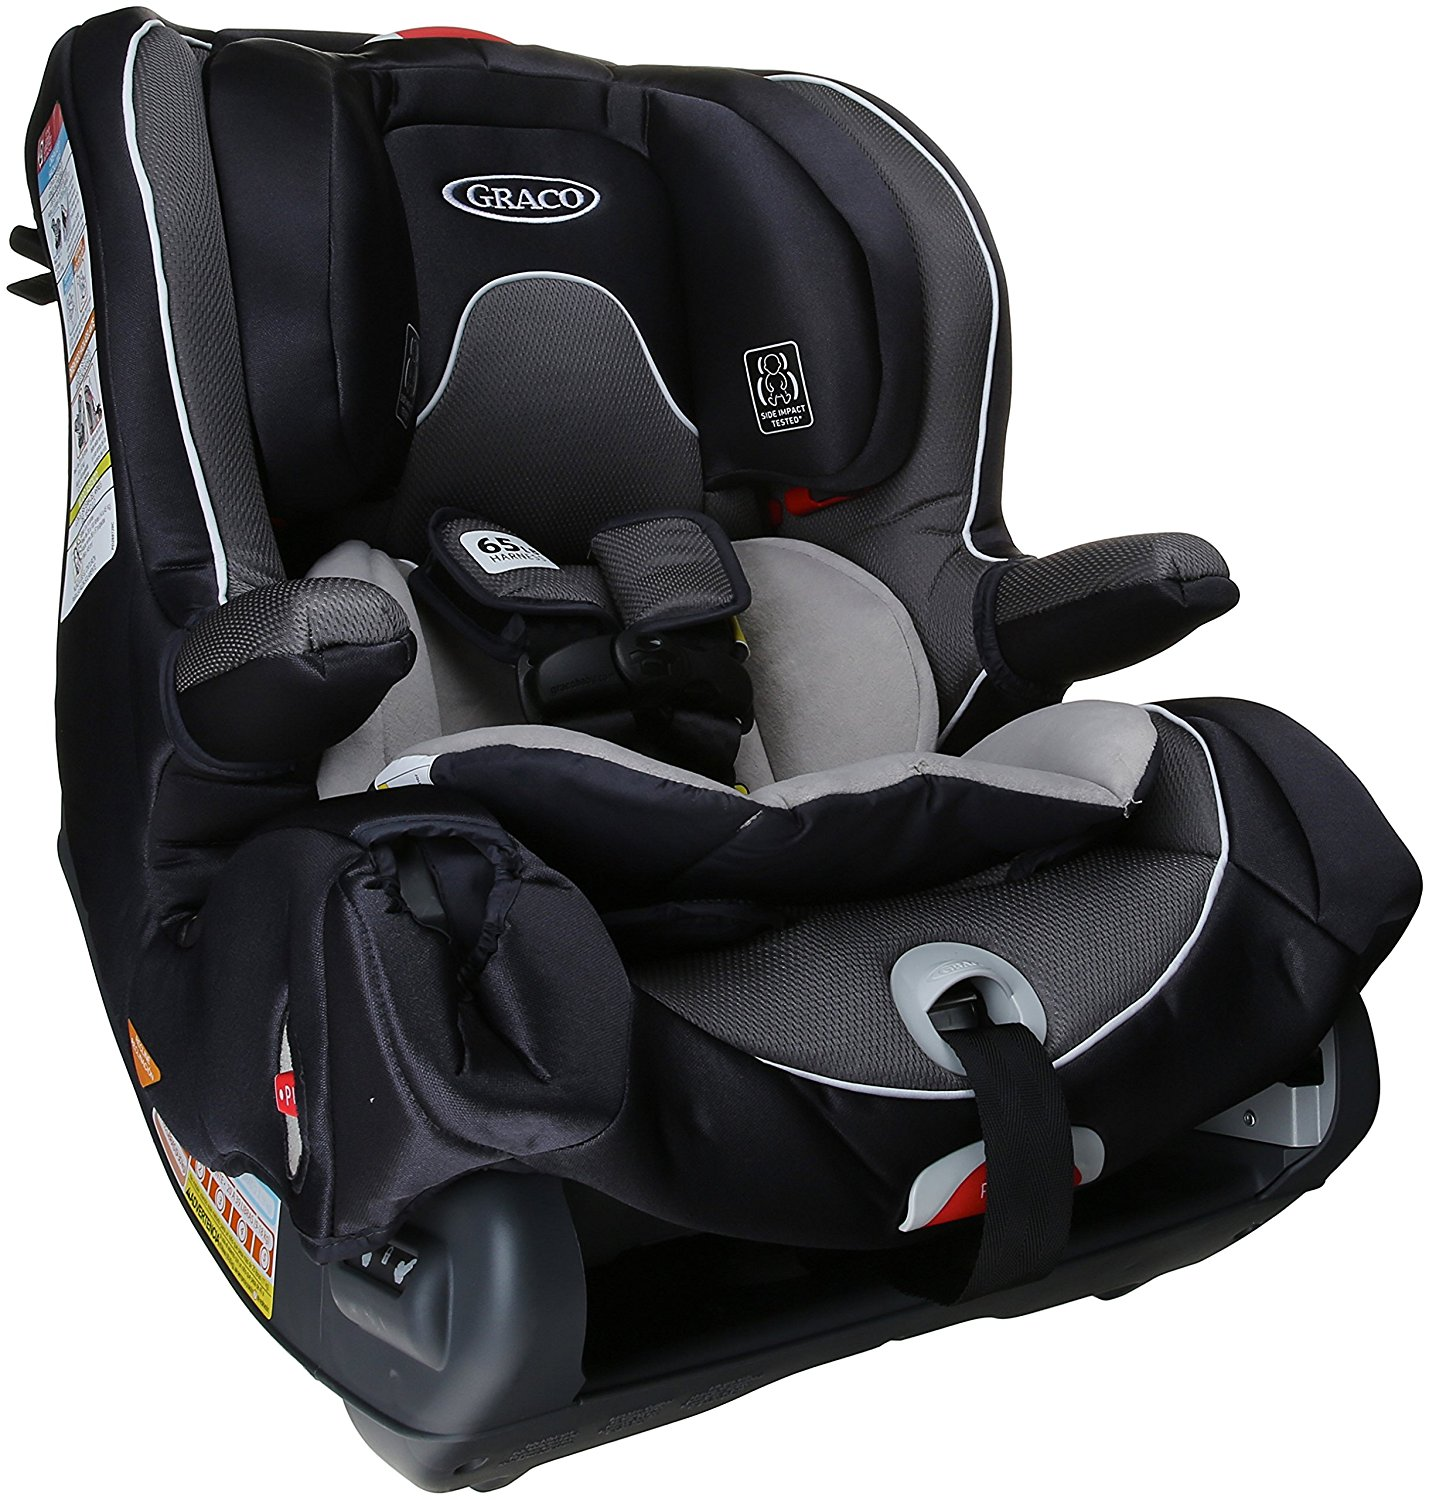 Graco Car Seat-SmartSeat All-in-One Car Seat